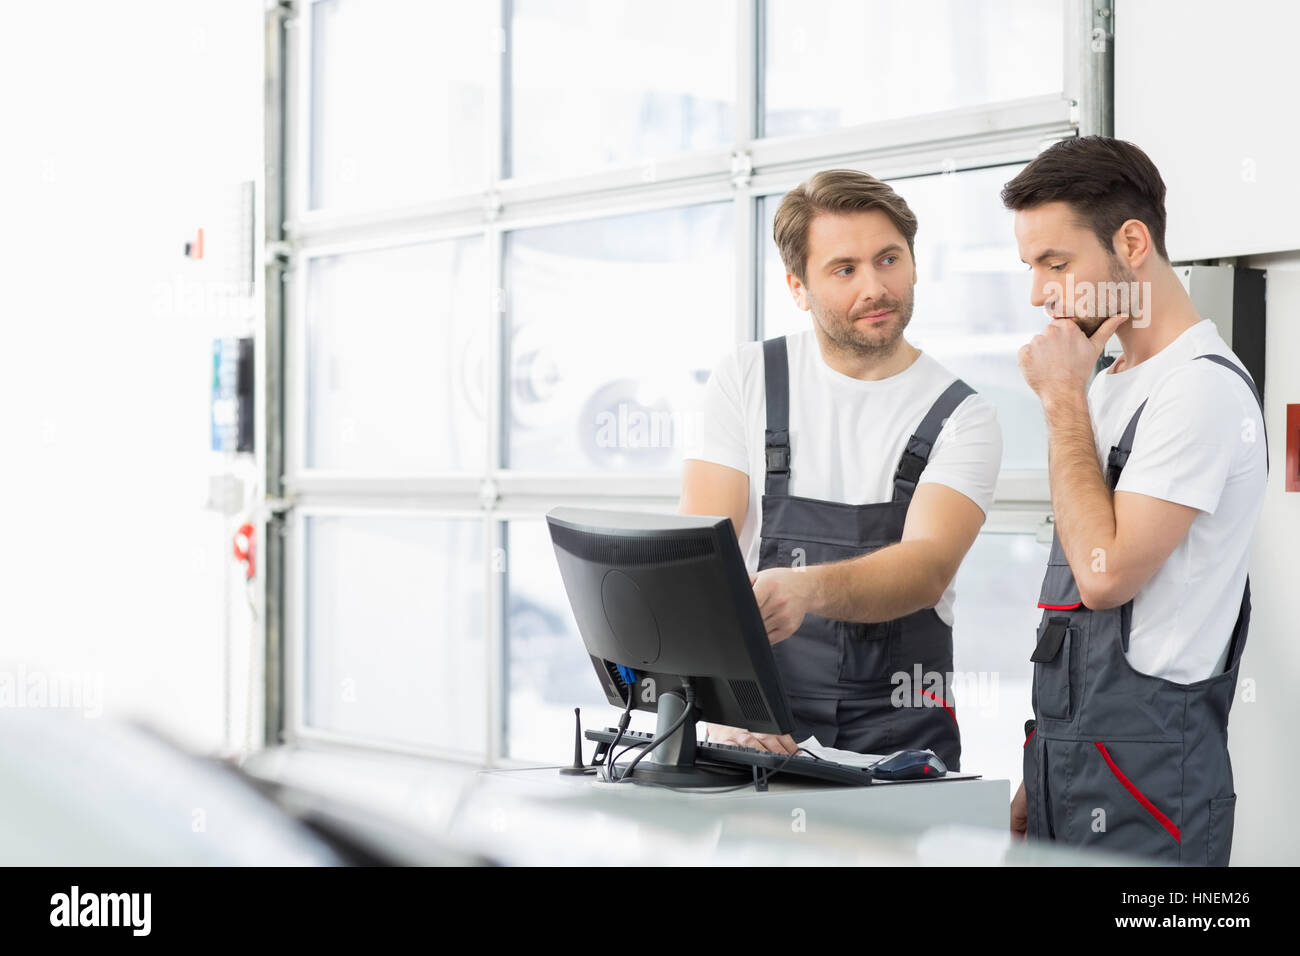 Male automobile mechanics conversing in repair shop - Stock Image